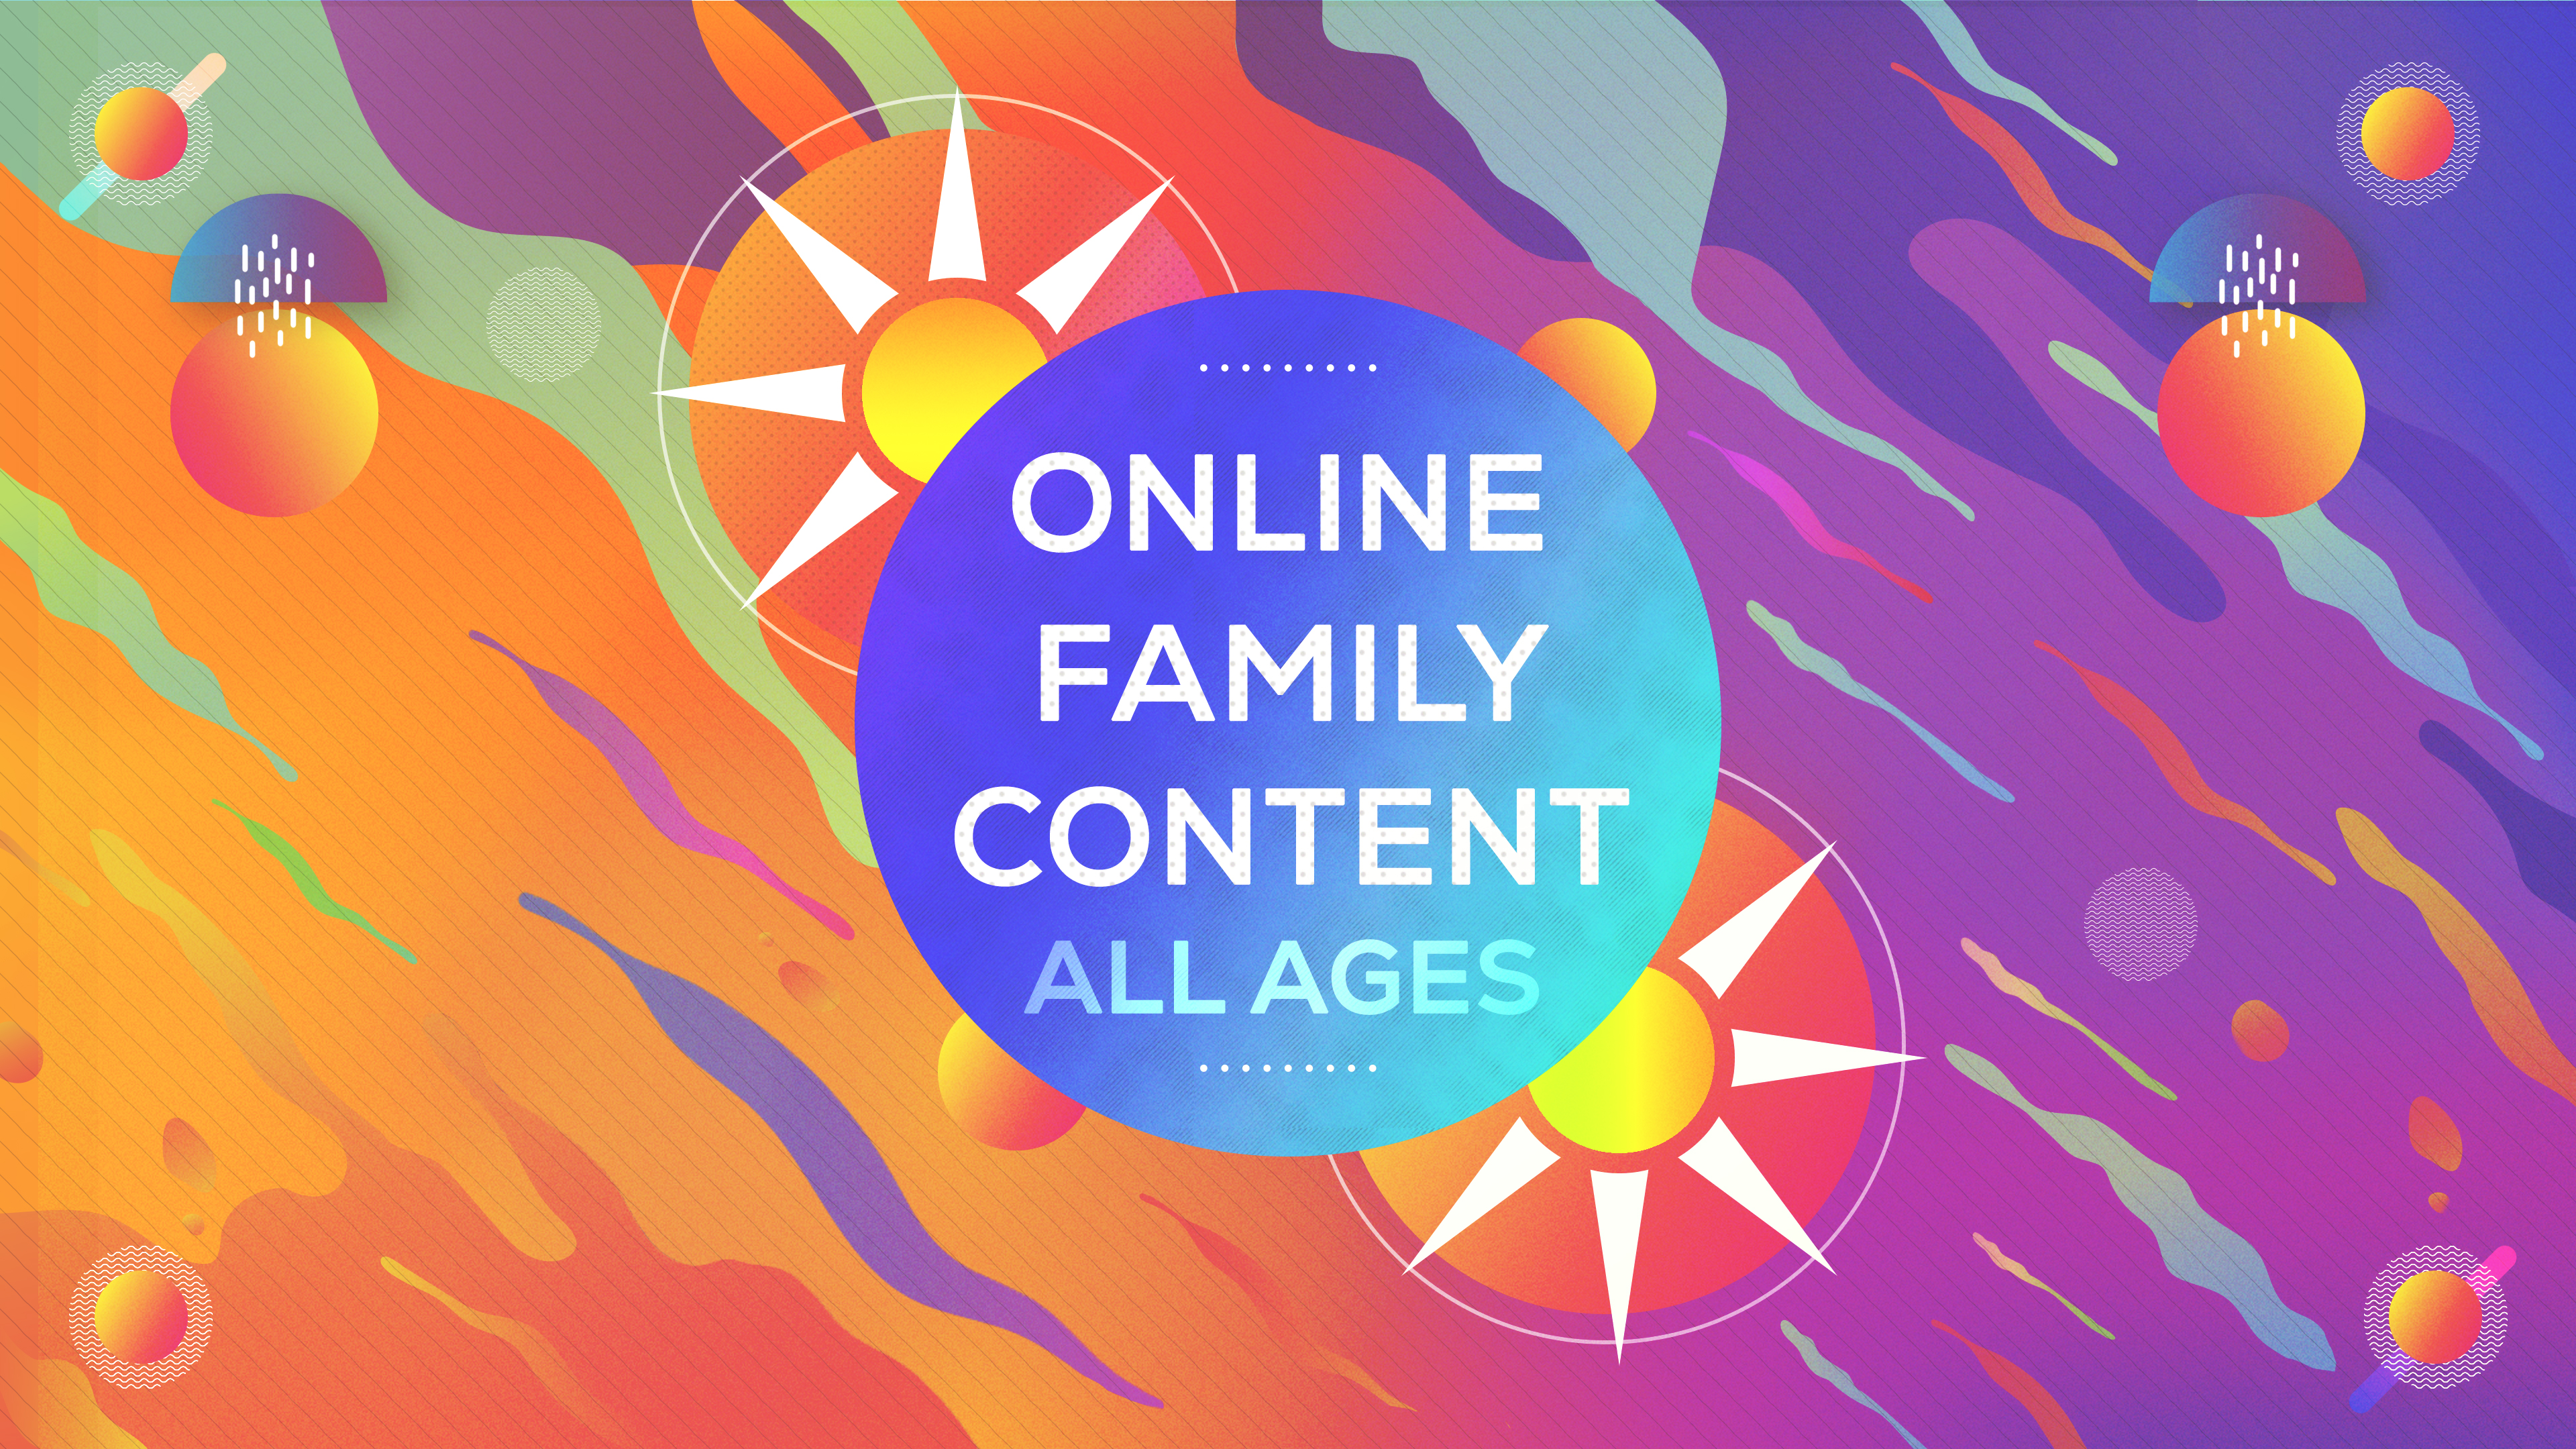 Online Family Content